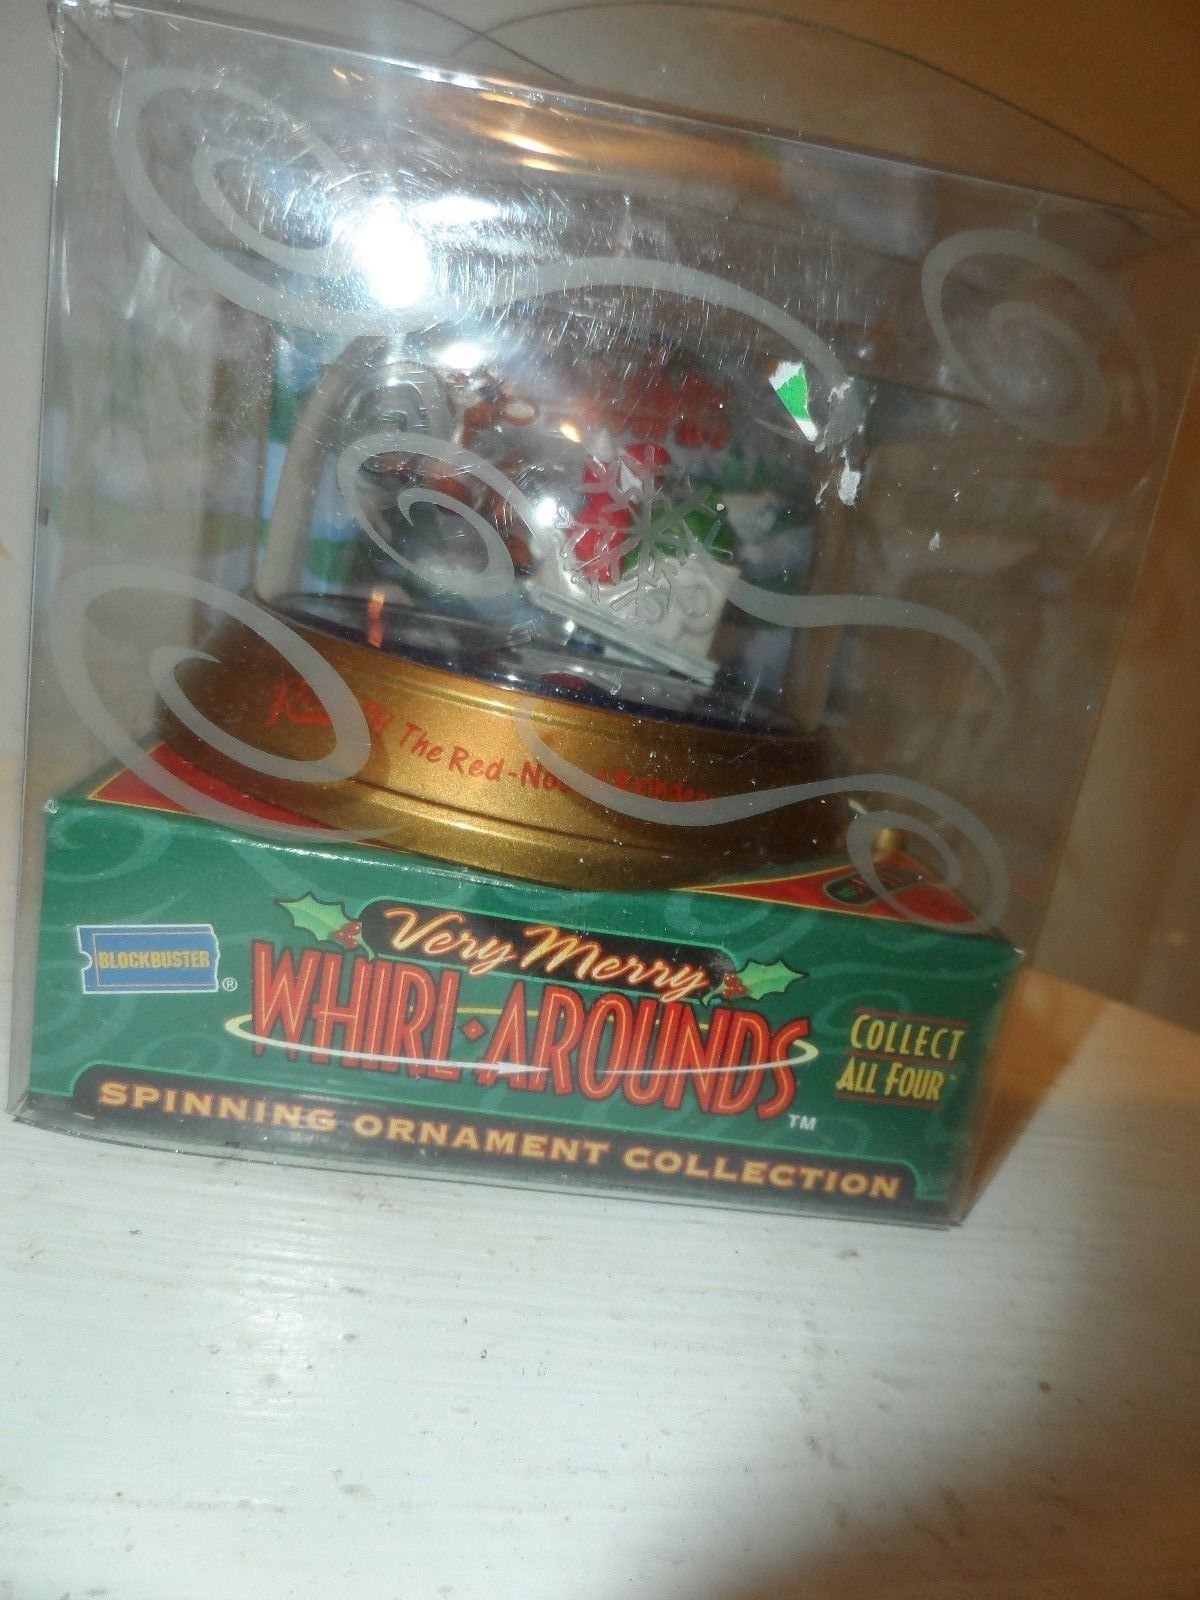 Rudolph Red Nose Blockbuster Very Merry Whirl Arounds Spinning Ornament